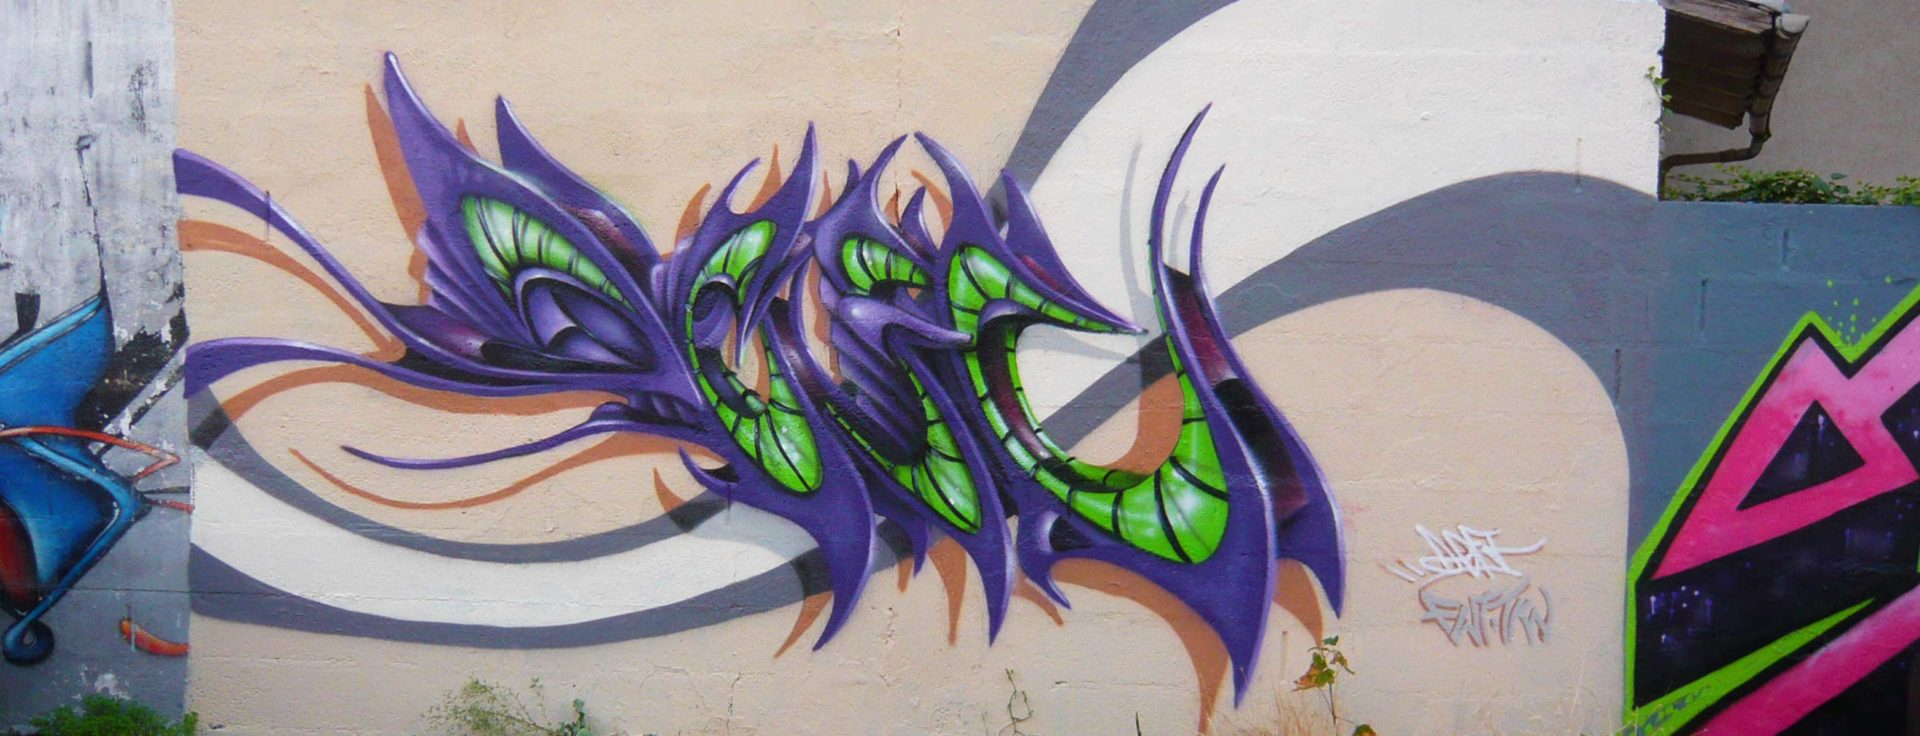 deft_graffiti_2013_1